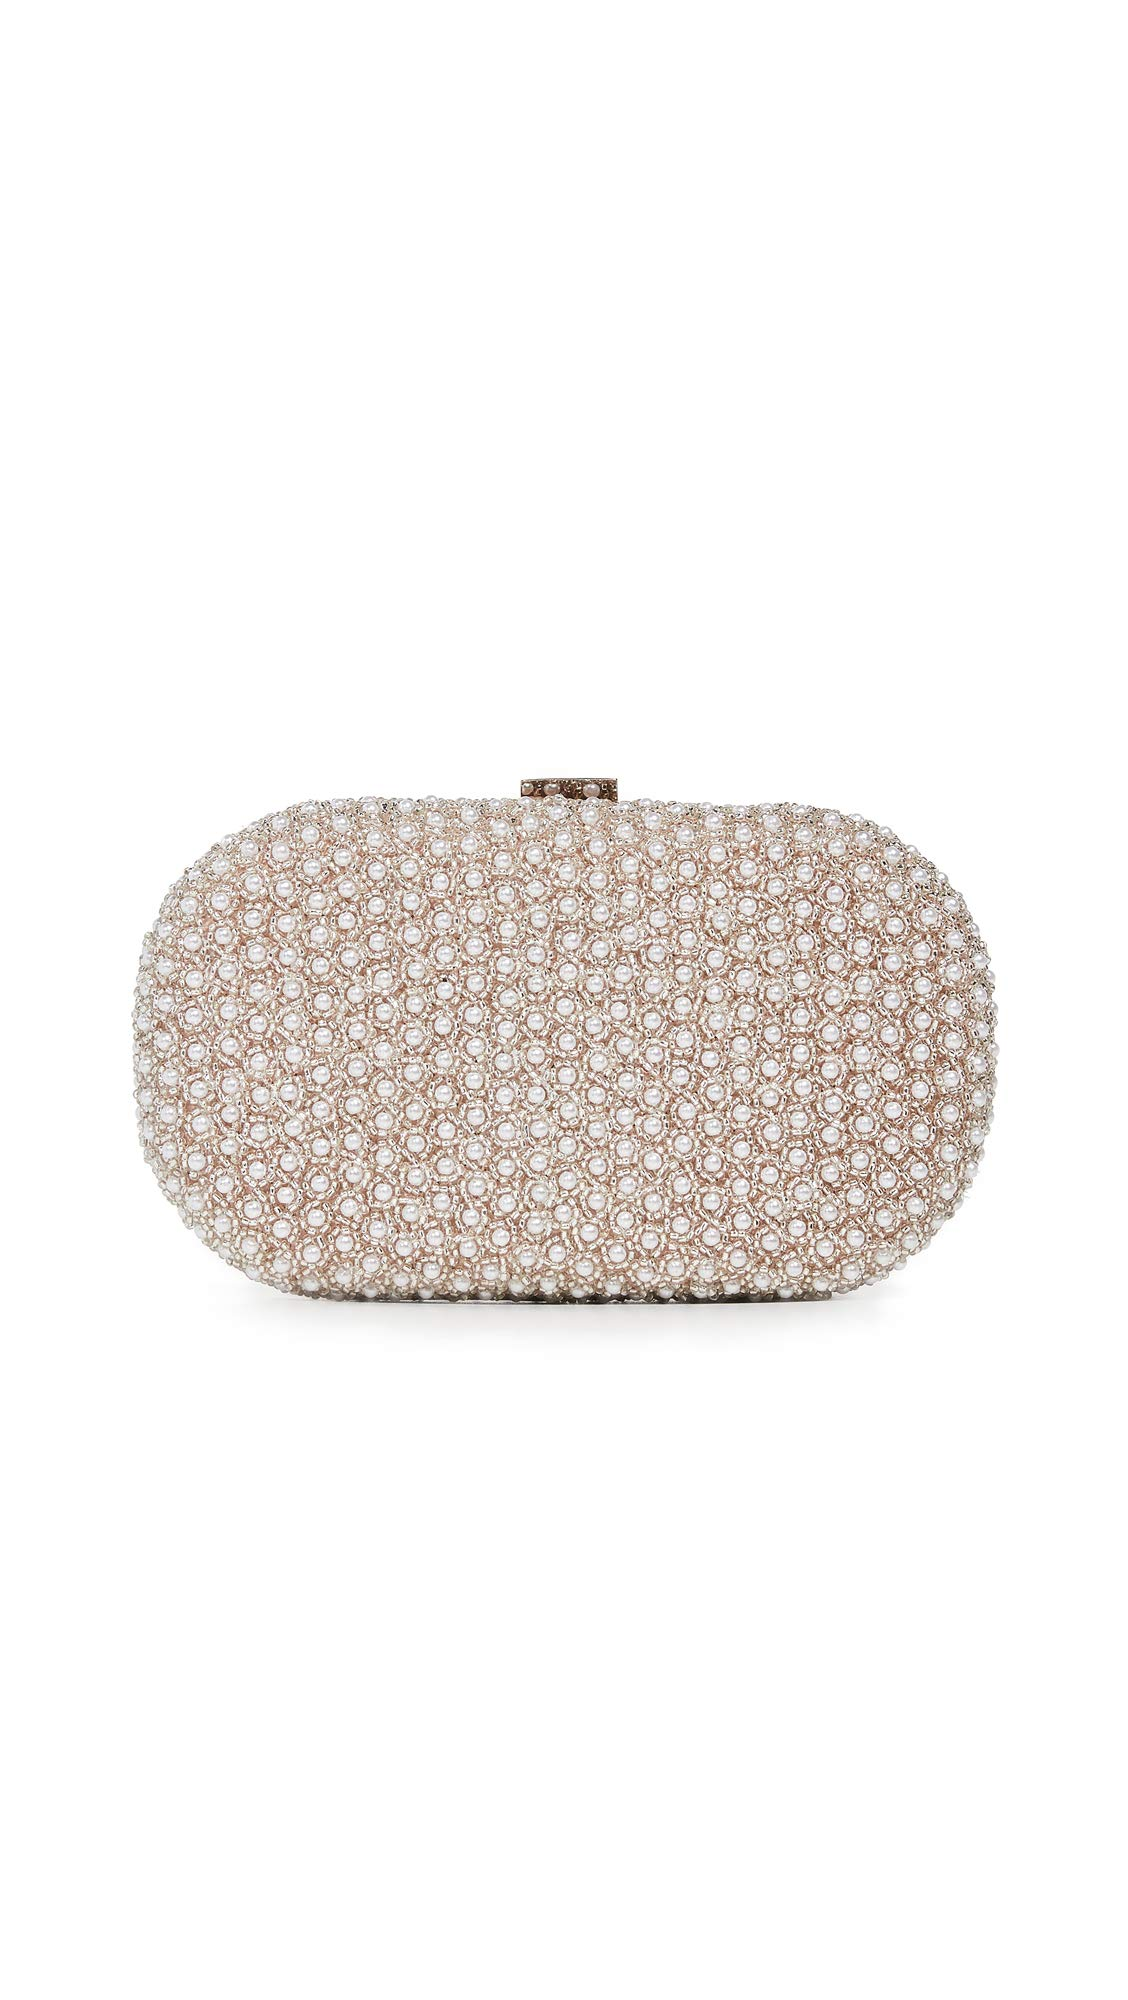 Santi Women's Imitation Pearl Clutch, Taupe/Silver, One Size